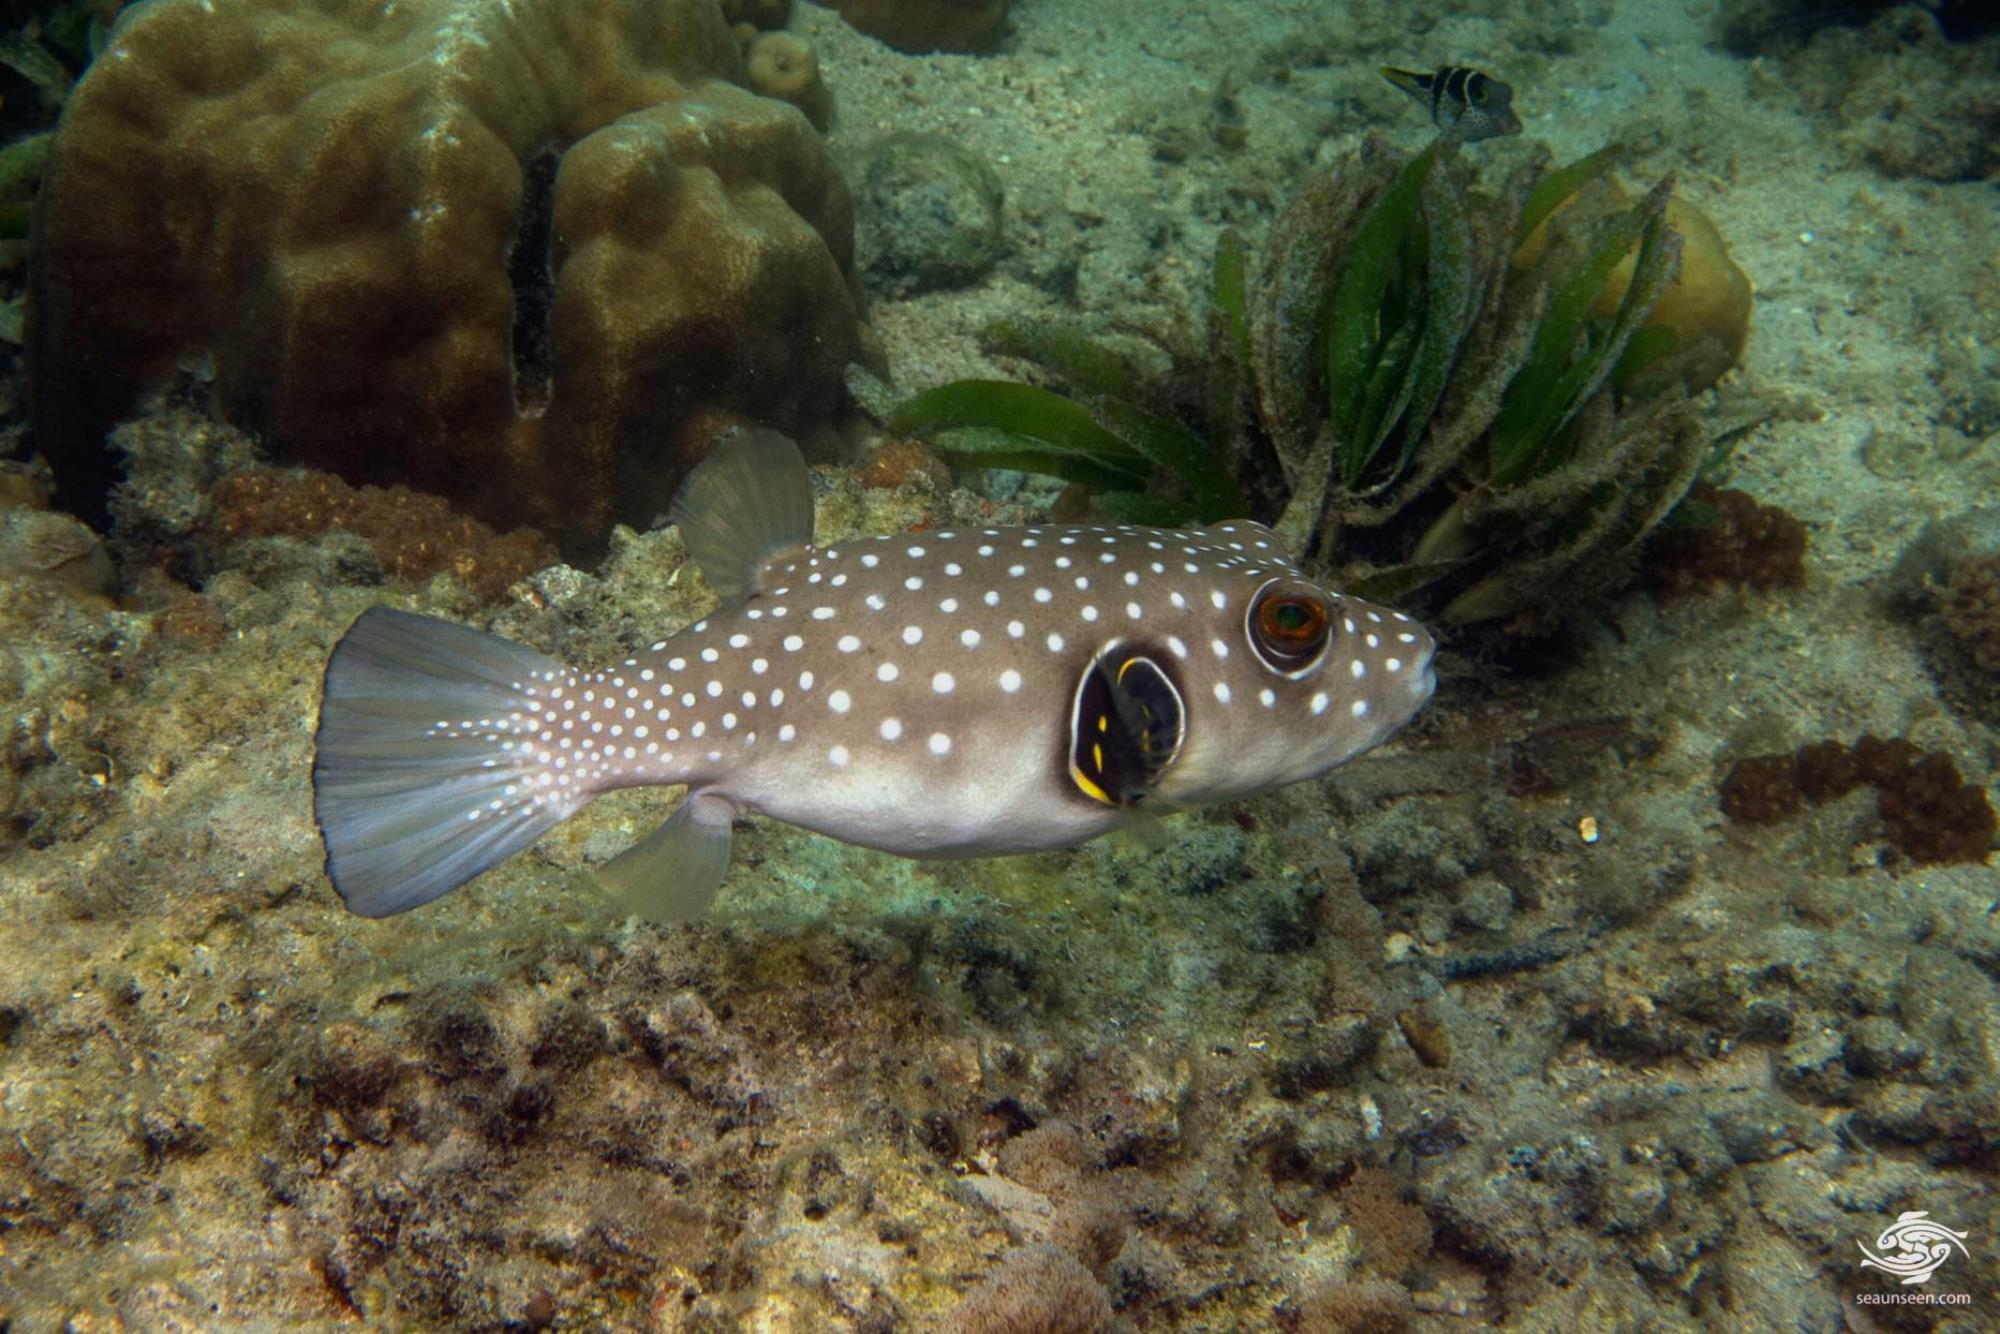 White spotted pufferfish facts and photographs seaunseen for Fish s wild